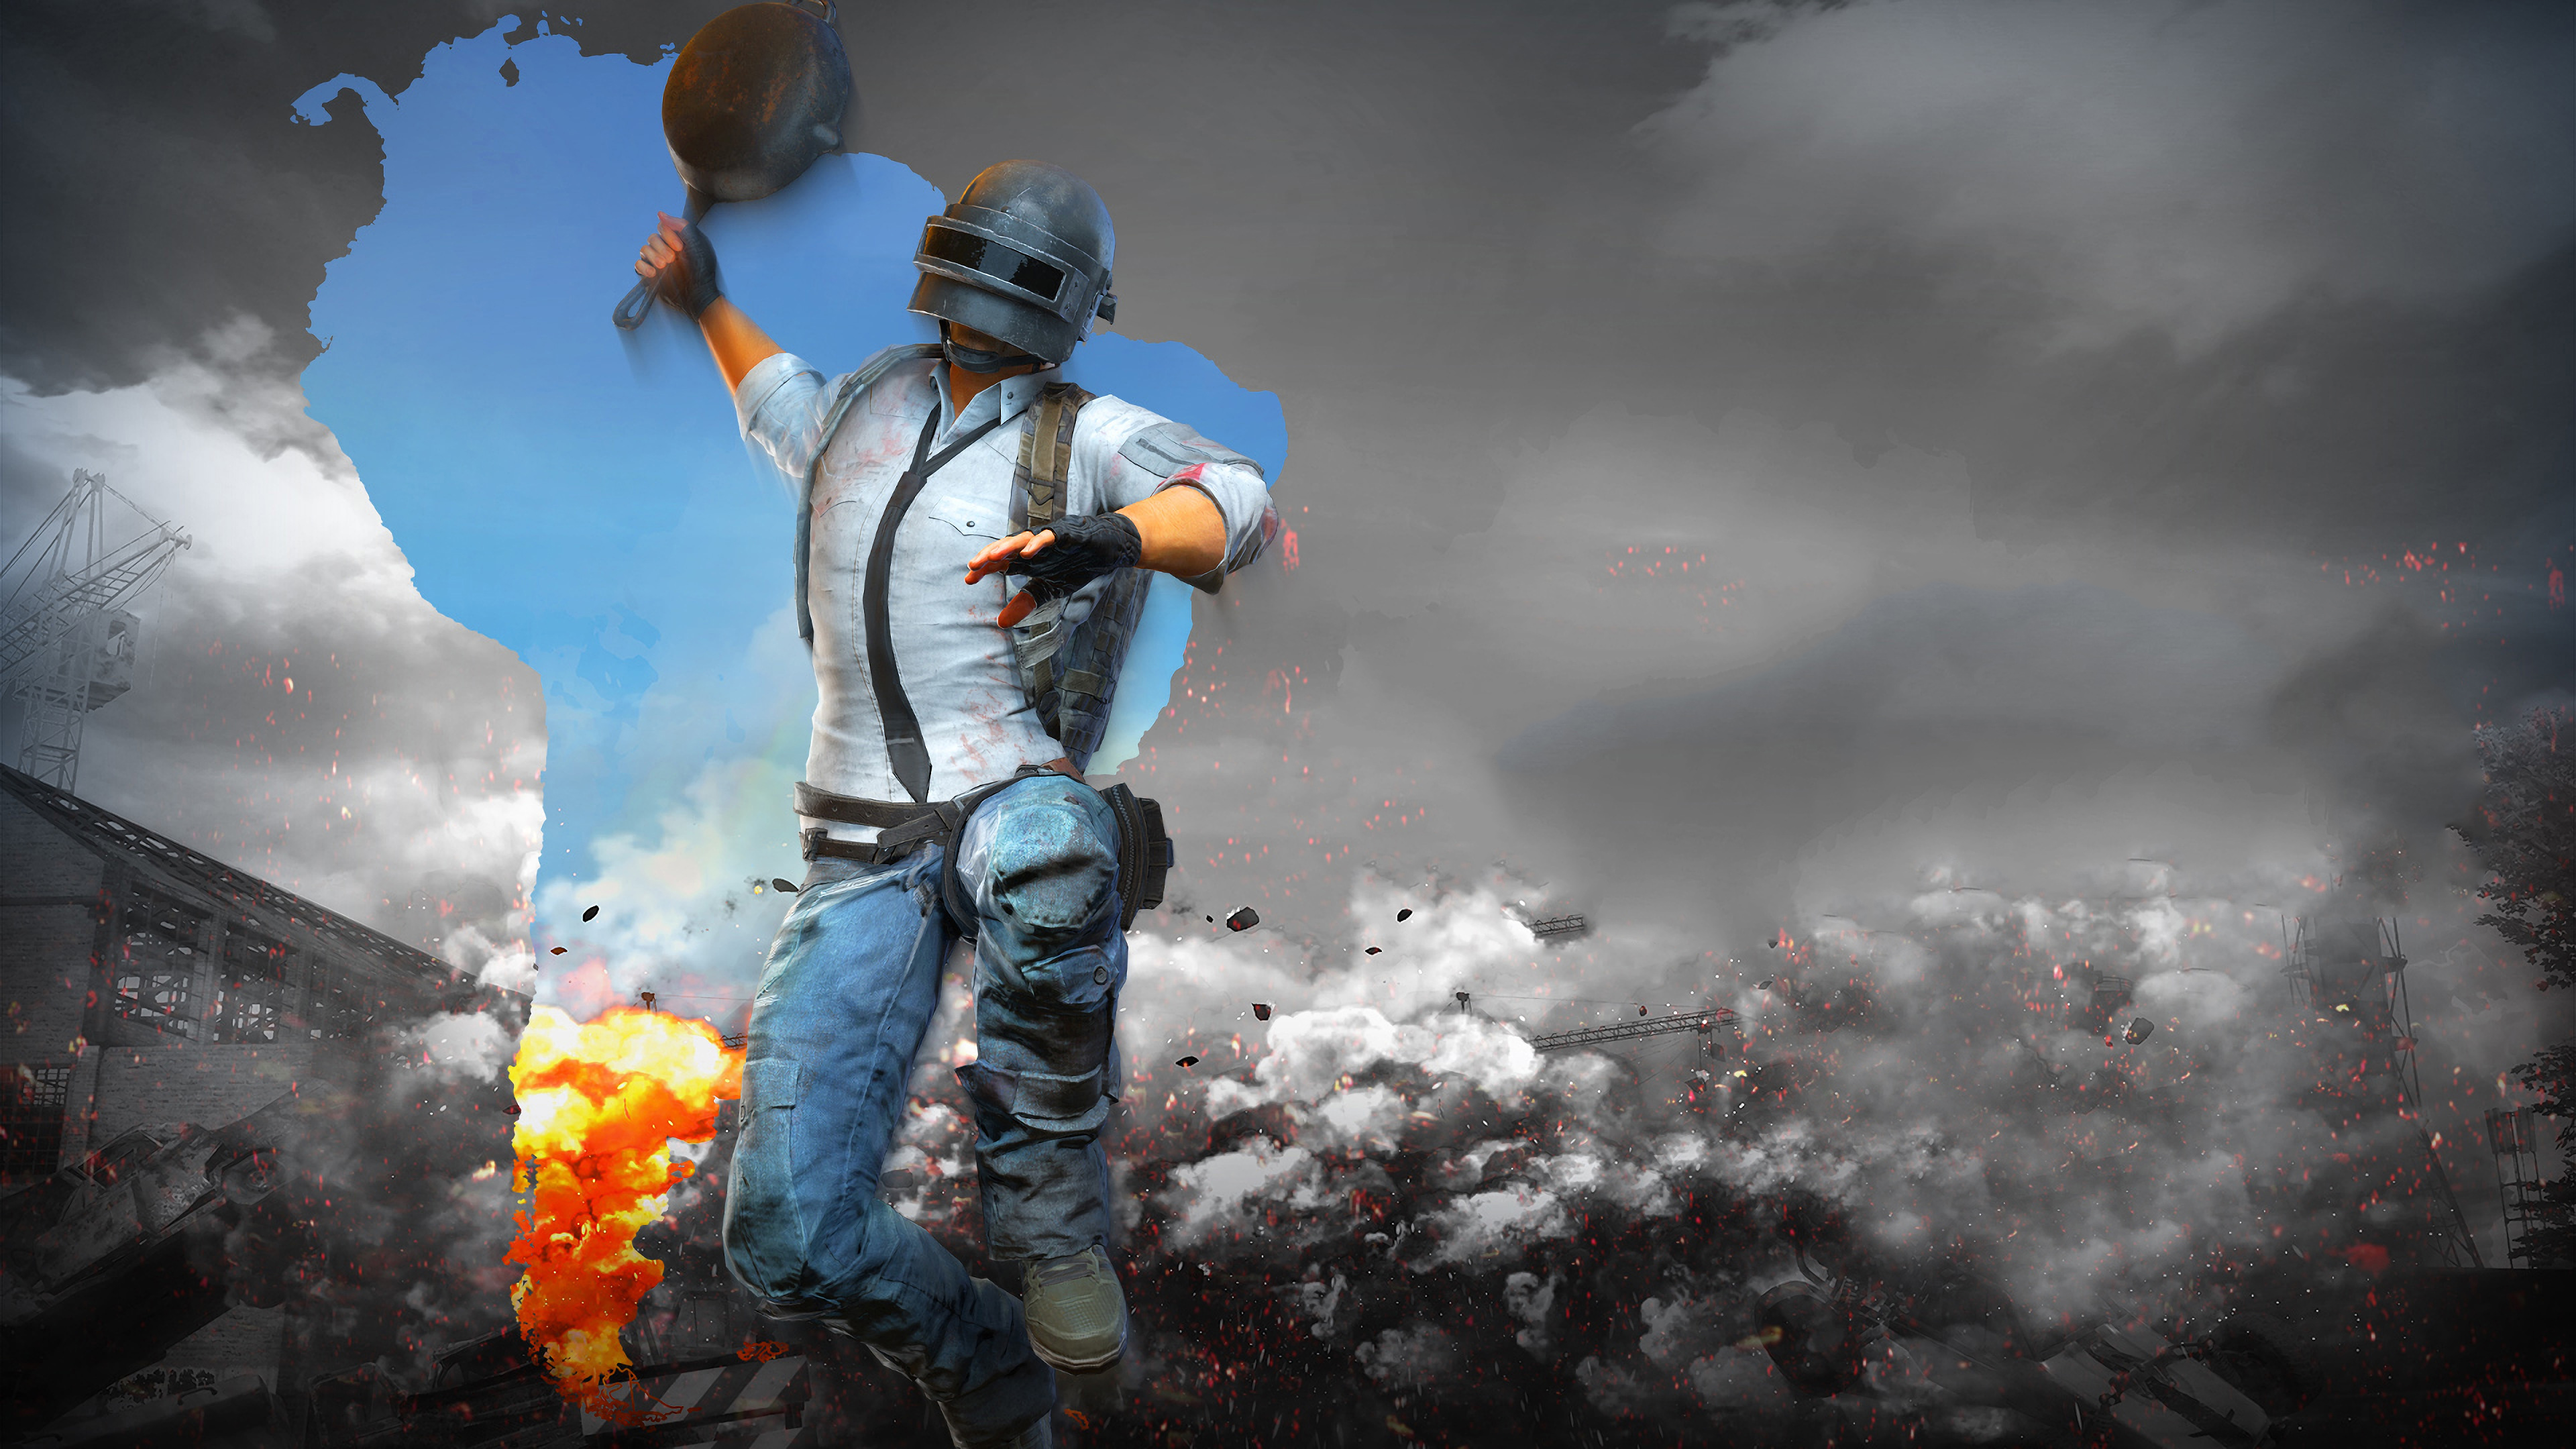 Pubg Mobile Helmet Wallpaper Pubg Pubgwallpapers: 1920x1080 PUBG Helmet Man With Pan 4k Laptop Full HD 1080P